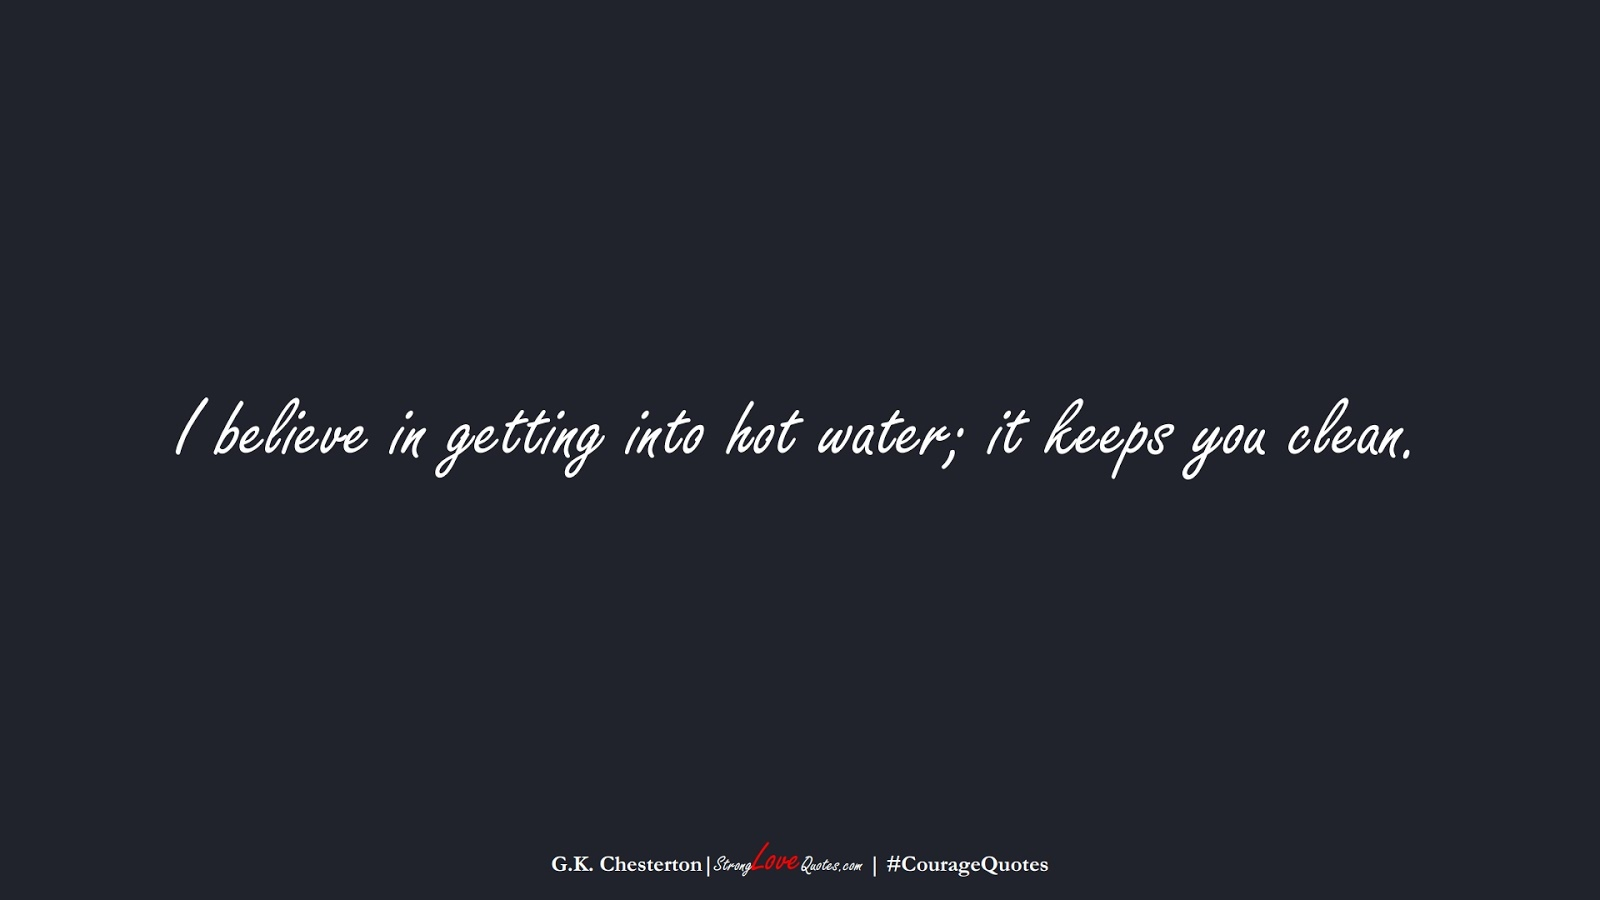 I believe in getting into hot water; it keeps you clean. (G.K. Chesterton);  #CourageQuotes